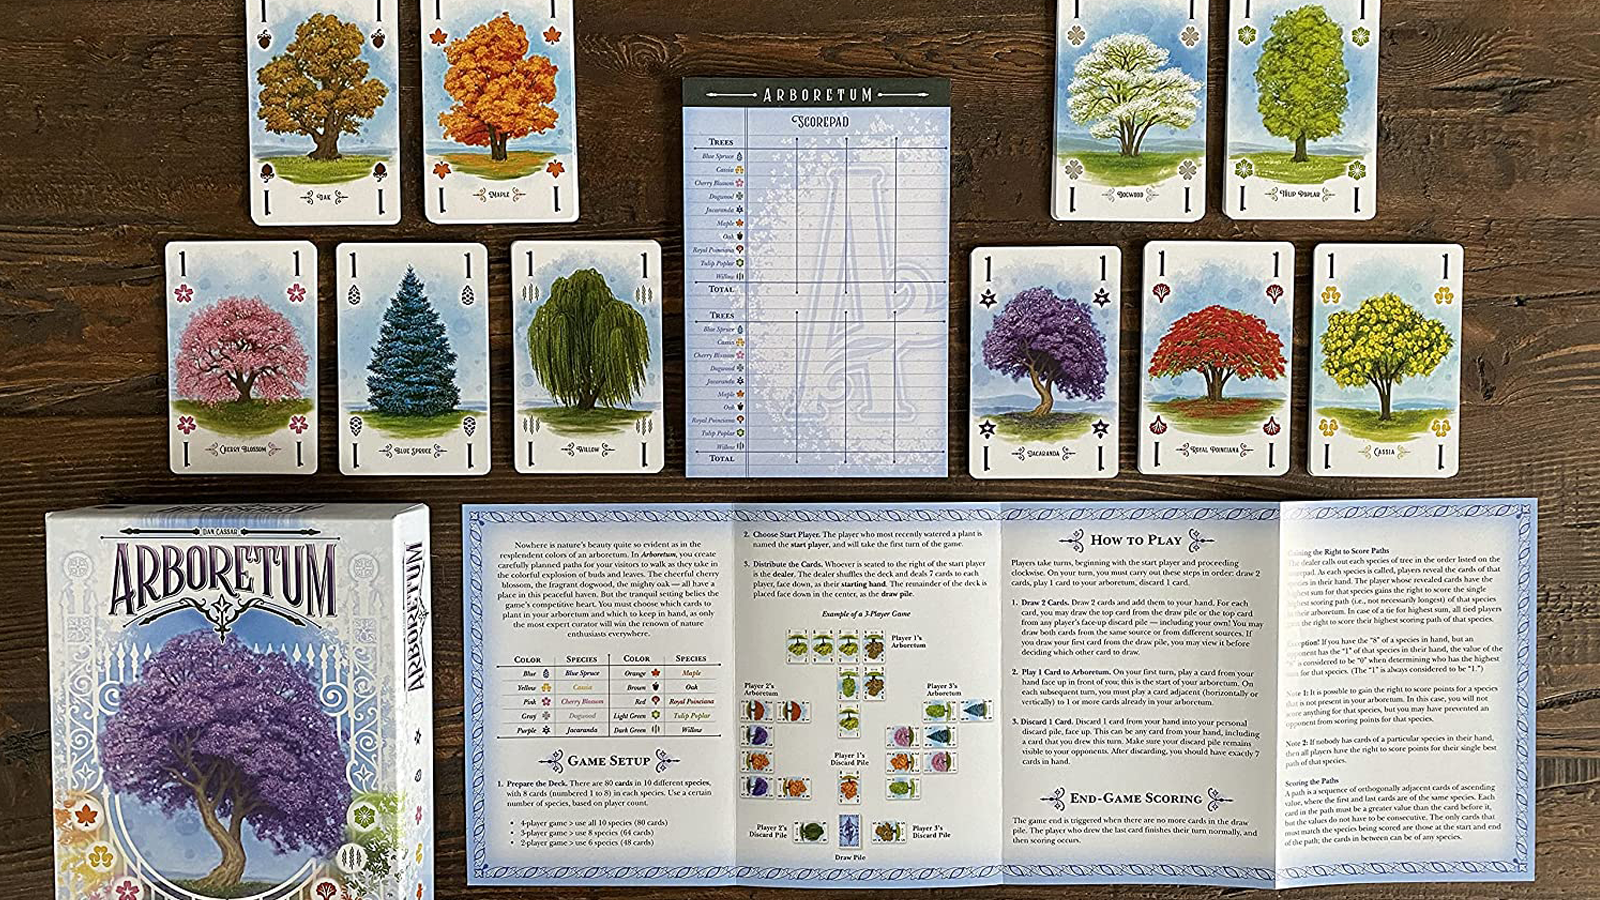 Box, cards, and instructions of game Arboretum laid out on wooden table